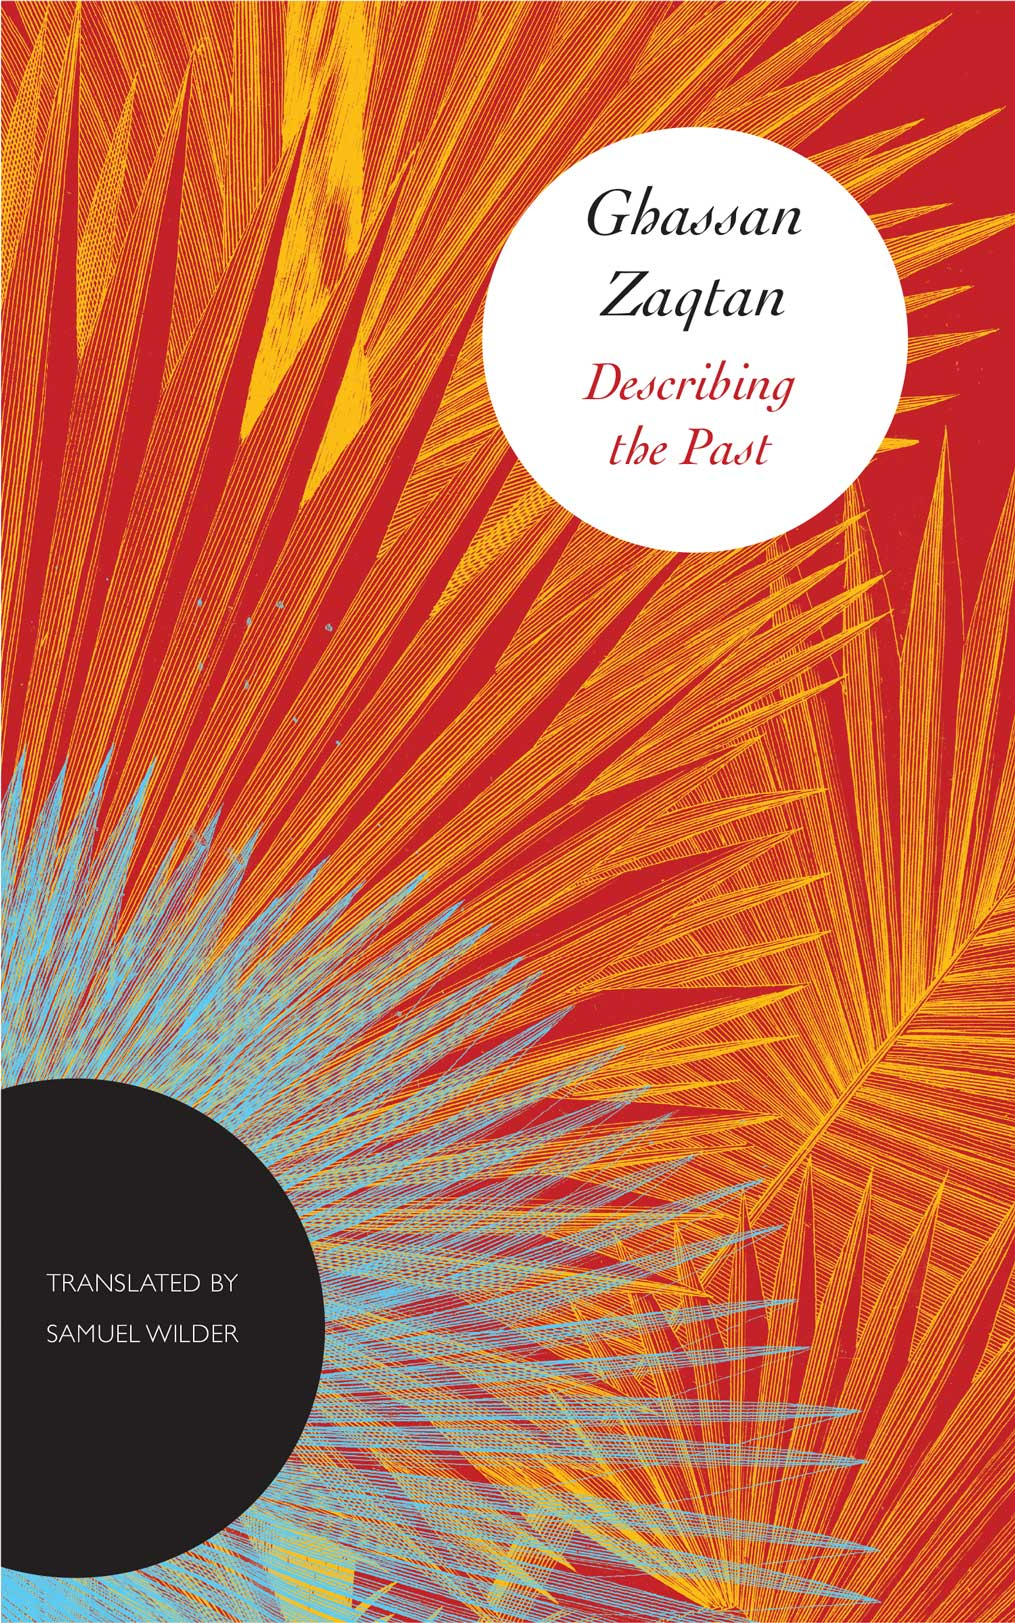 Describing the Past by Ghassan Zaqtan | Seagull Books